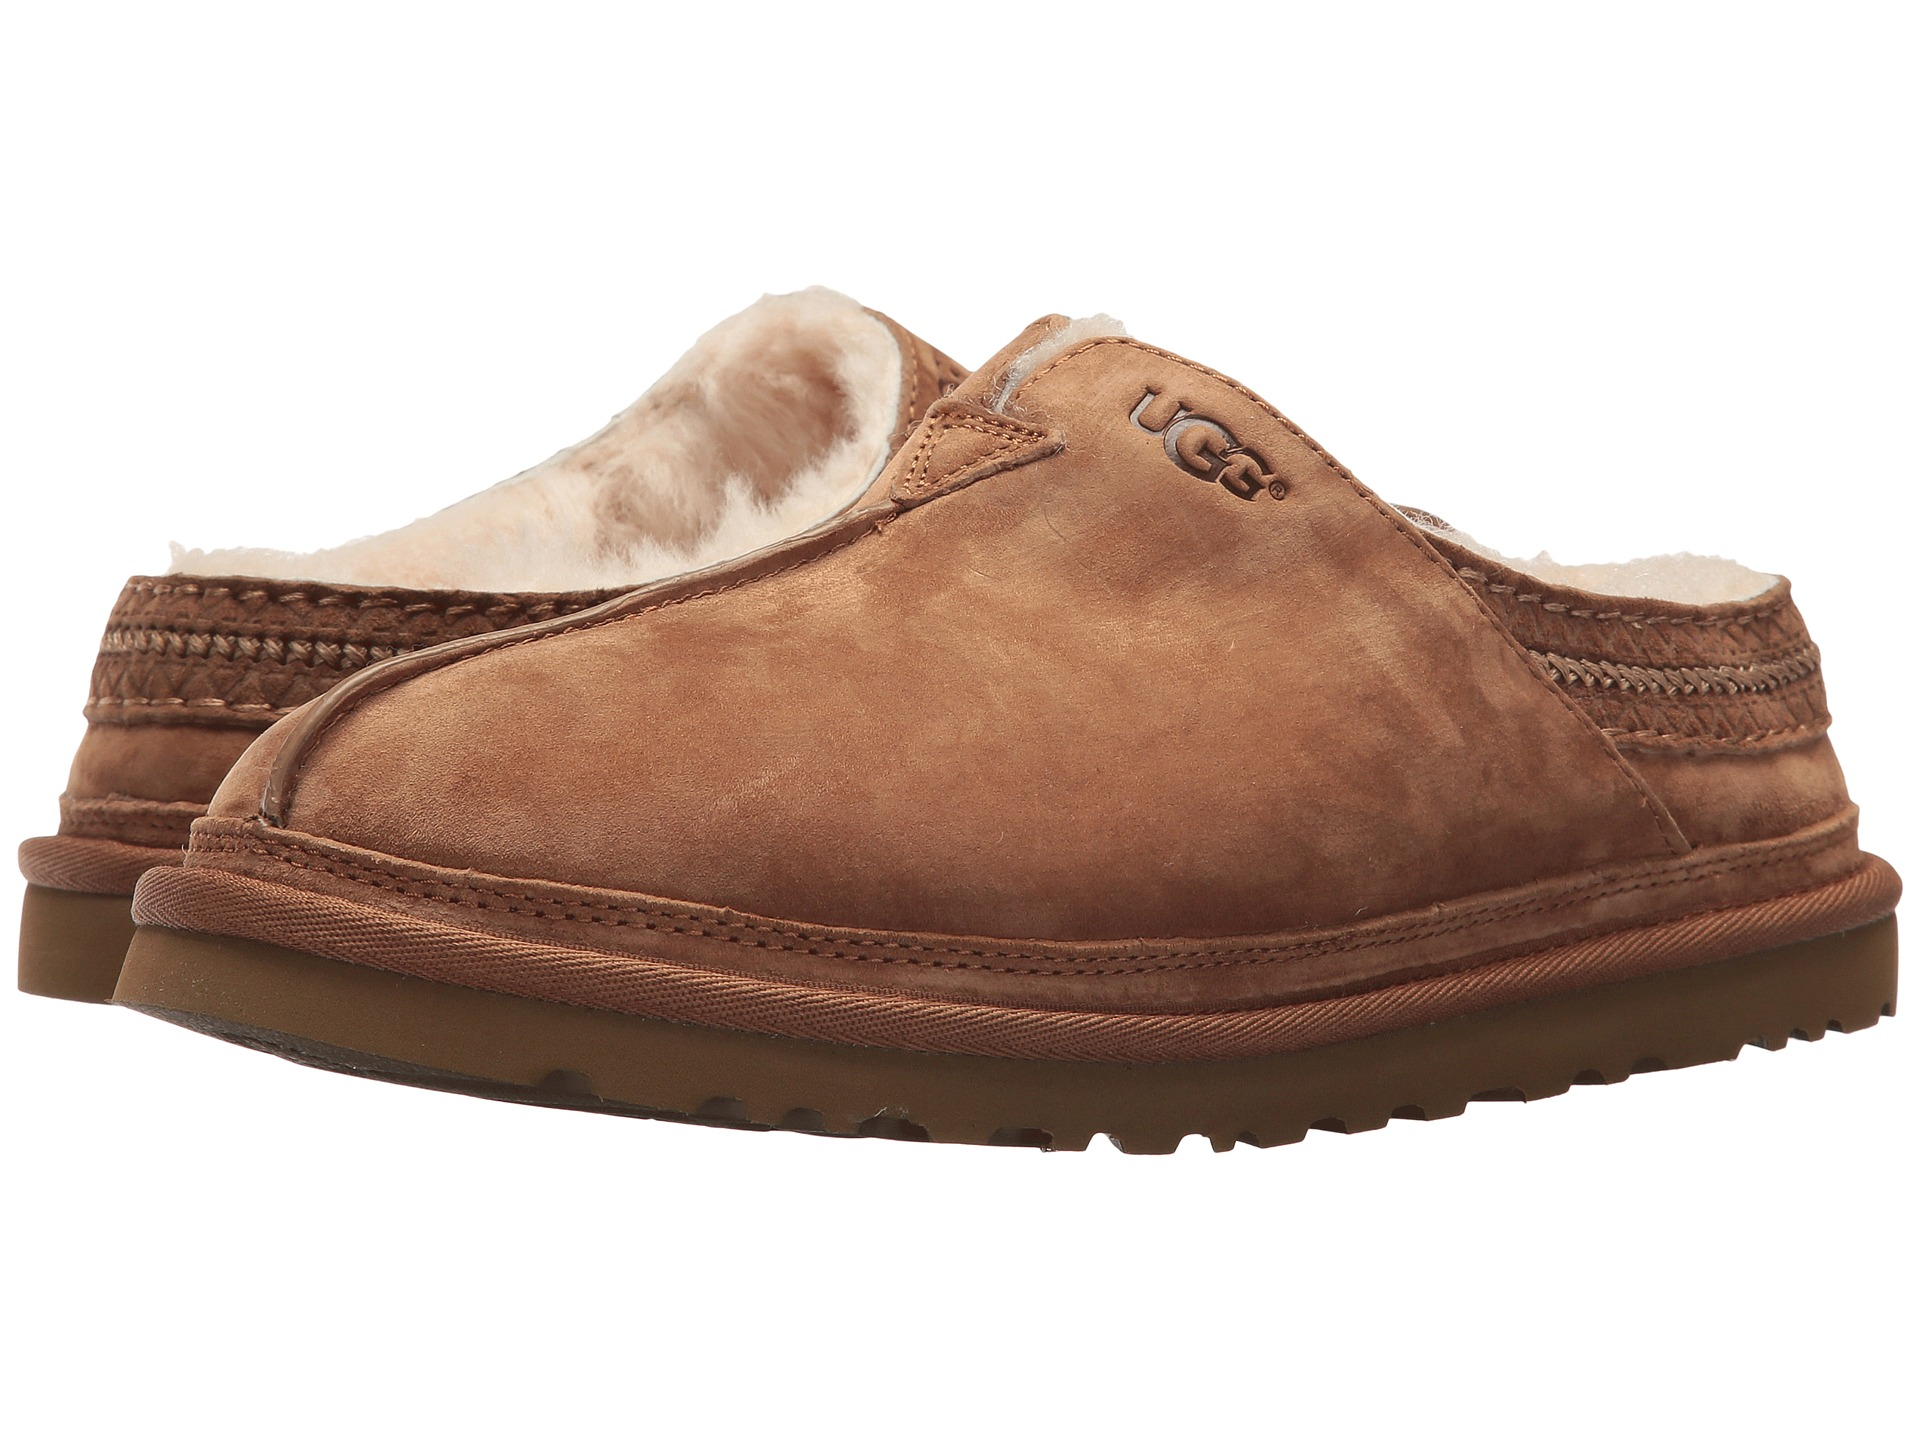 Zappos Mens Shoes Clearance